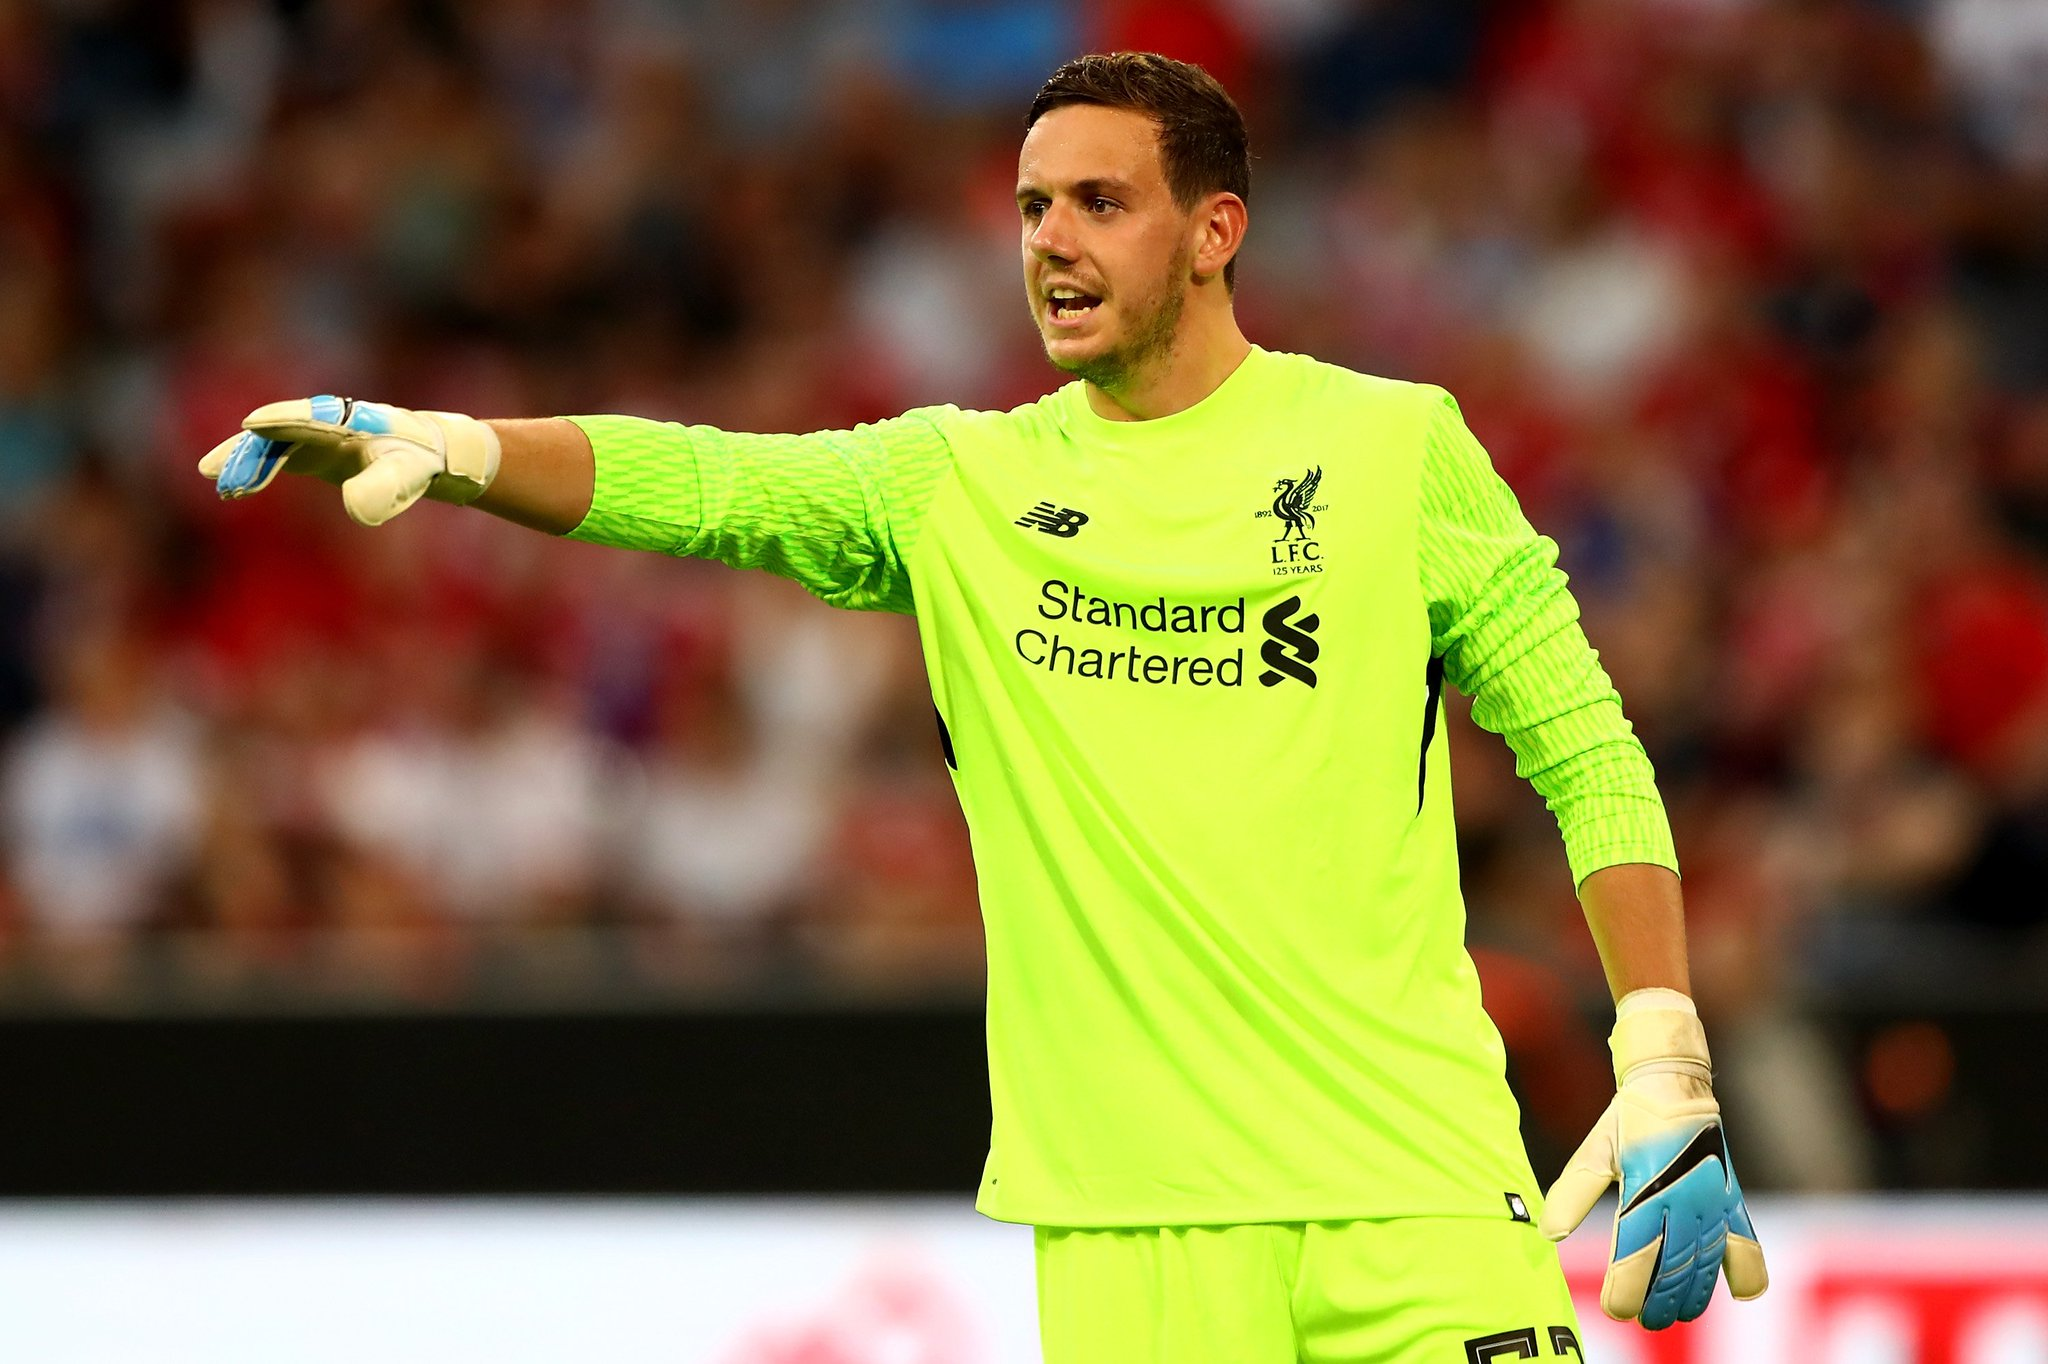 BREAKING: Leicester agree £10m fee with Liverpool to sign goalkeeper Danny Ward, according to Sky sources. #SSN https://t.co/QOEIeZgv3m